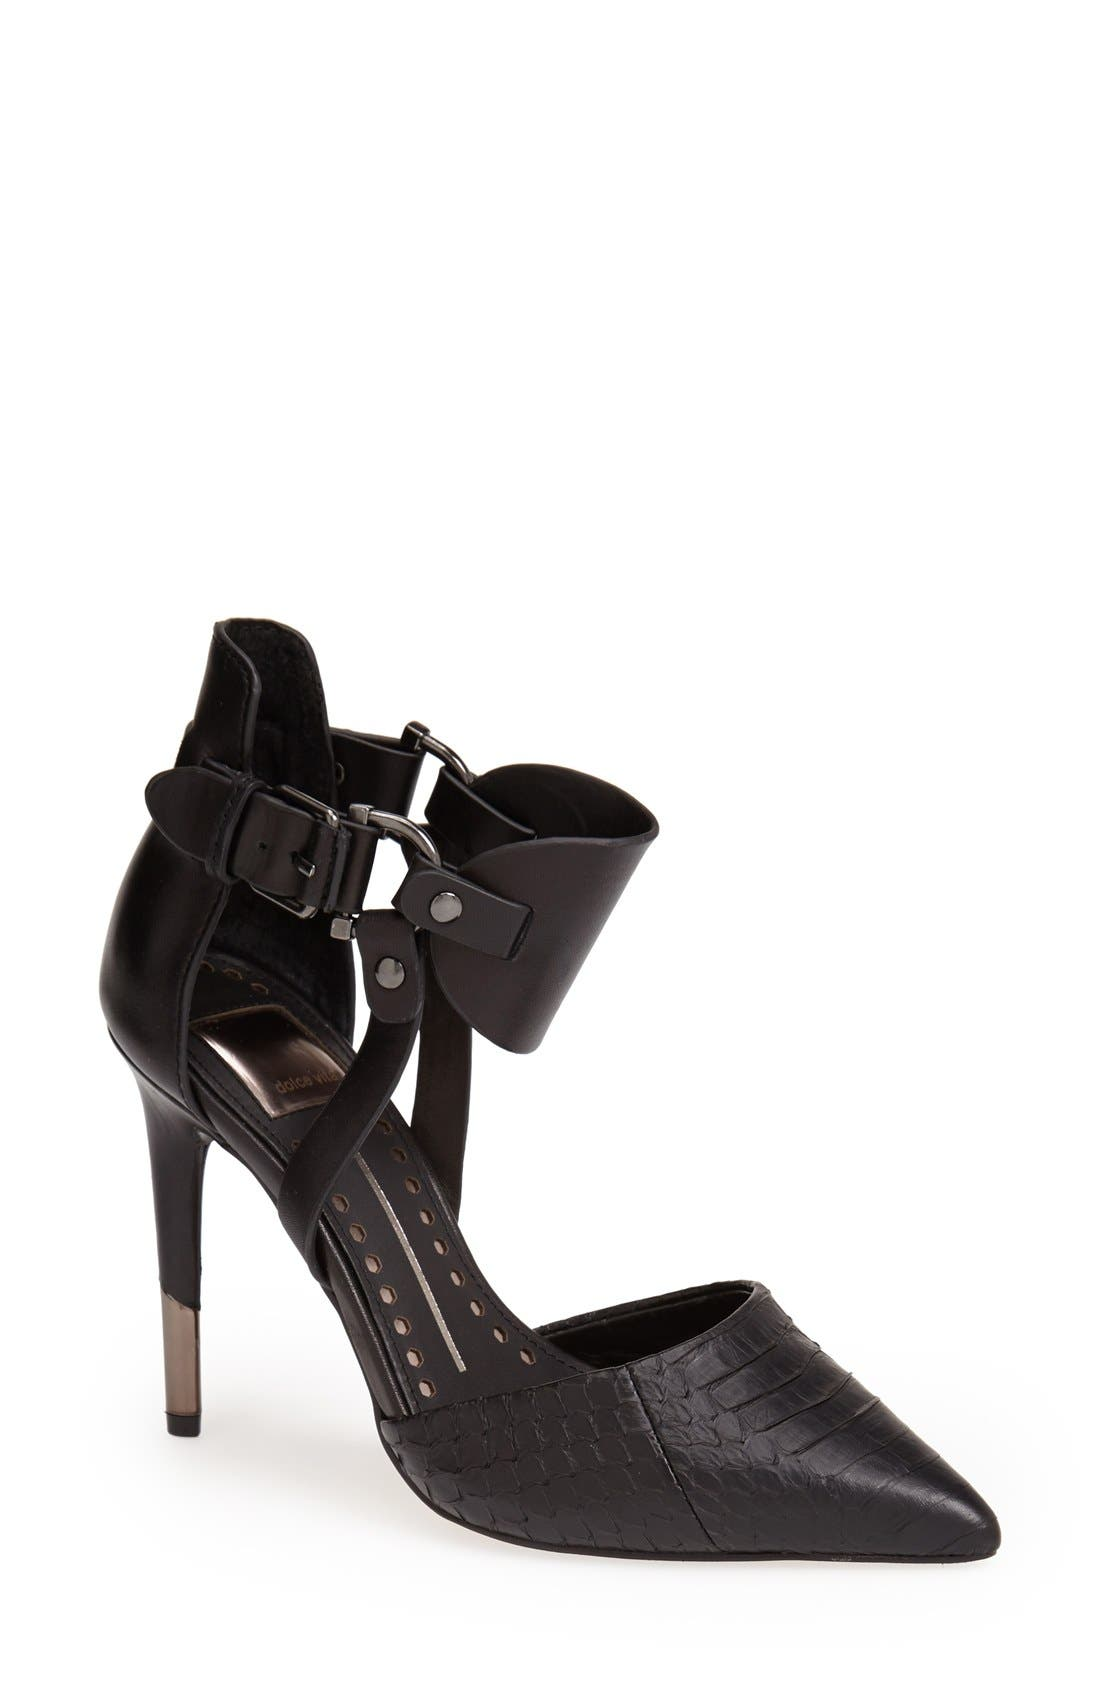 Alternate Image 1 Selected - Dolce Vita 'Knoxx' Leather Pump (Women)